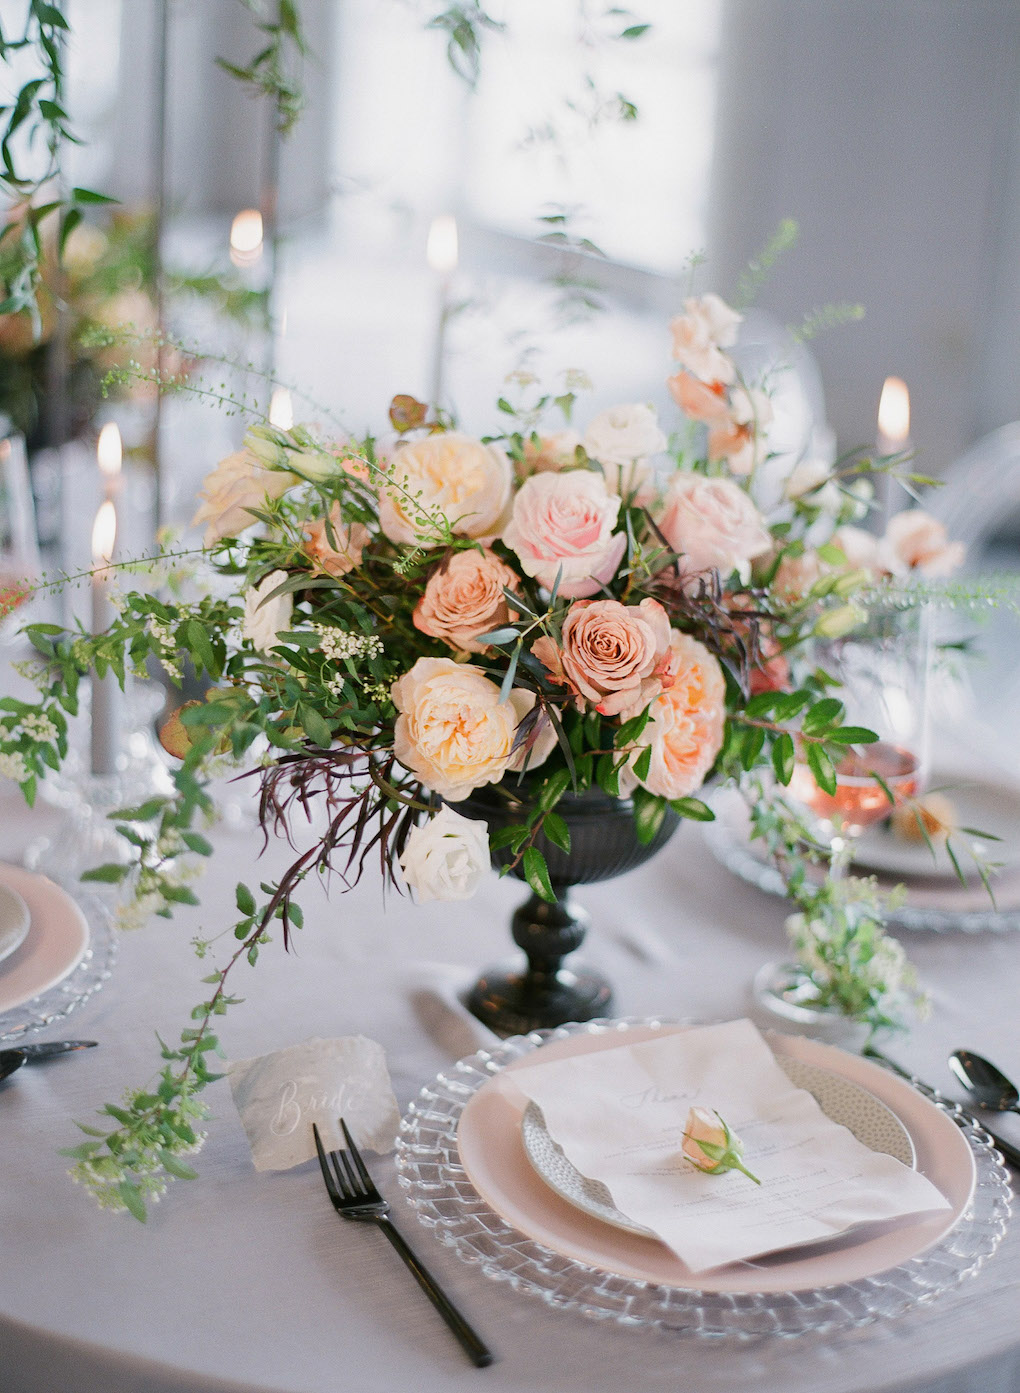 Lush and Romantic Tablescape: Soft and Subtle Palettes of Spring Blossoms | Editorial Shoot at The Renaissance Pittsburgh by Exhale Events. See more inspiration at exhale-events.com!